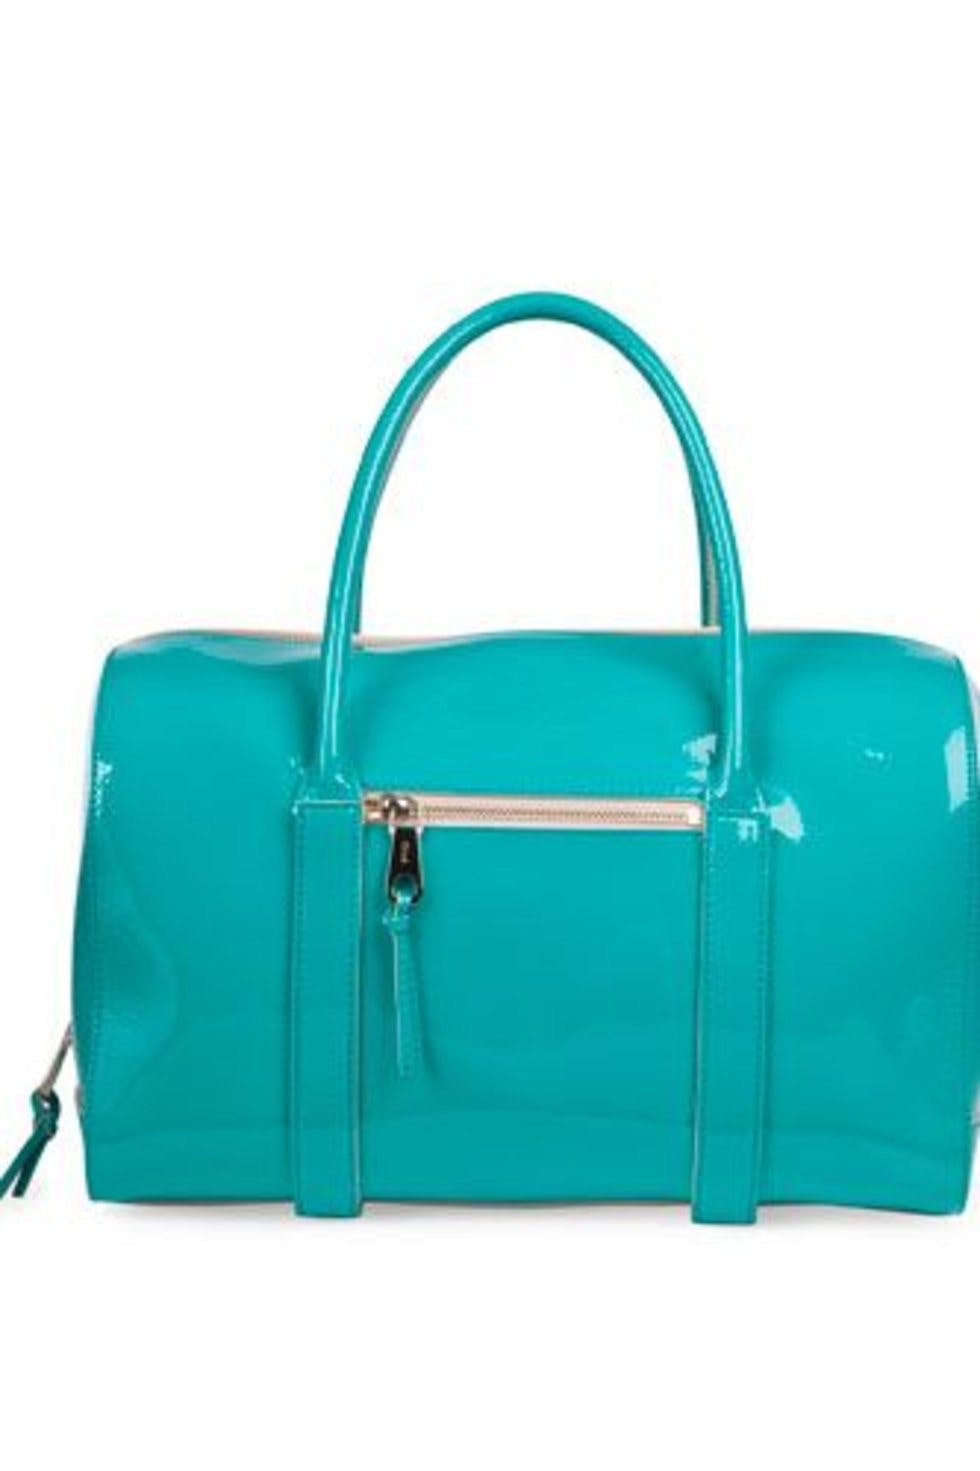 4f6188d3f2d7 Chloe s patent Madeleine bowling bag is as roomy as it is gorgeous.